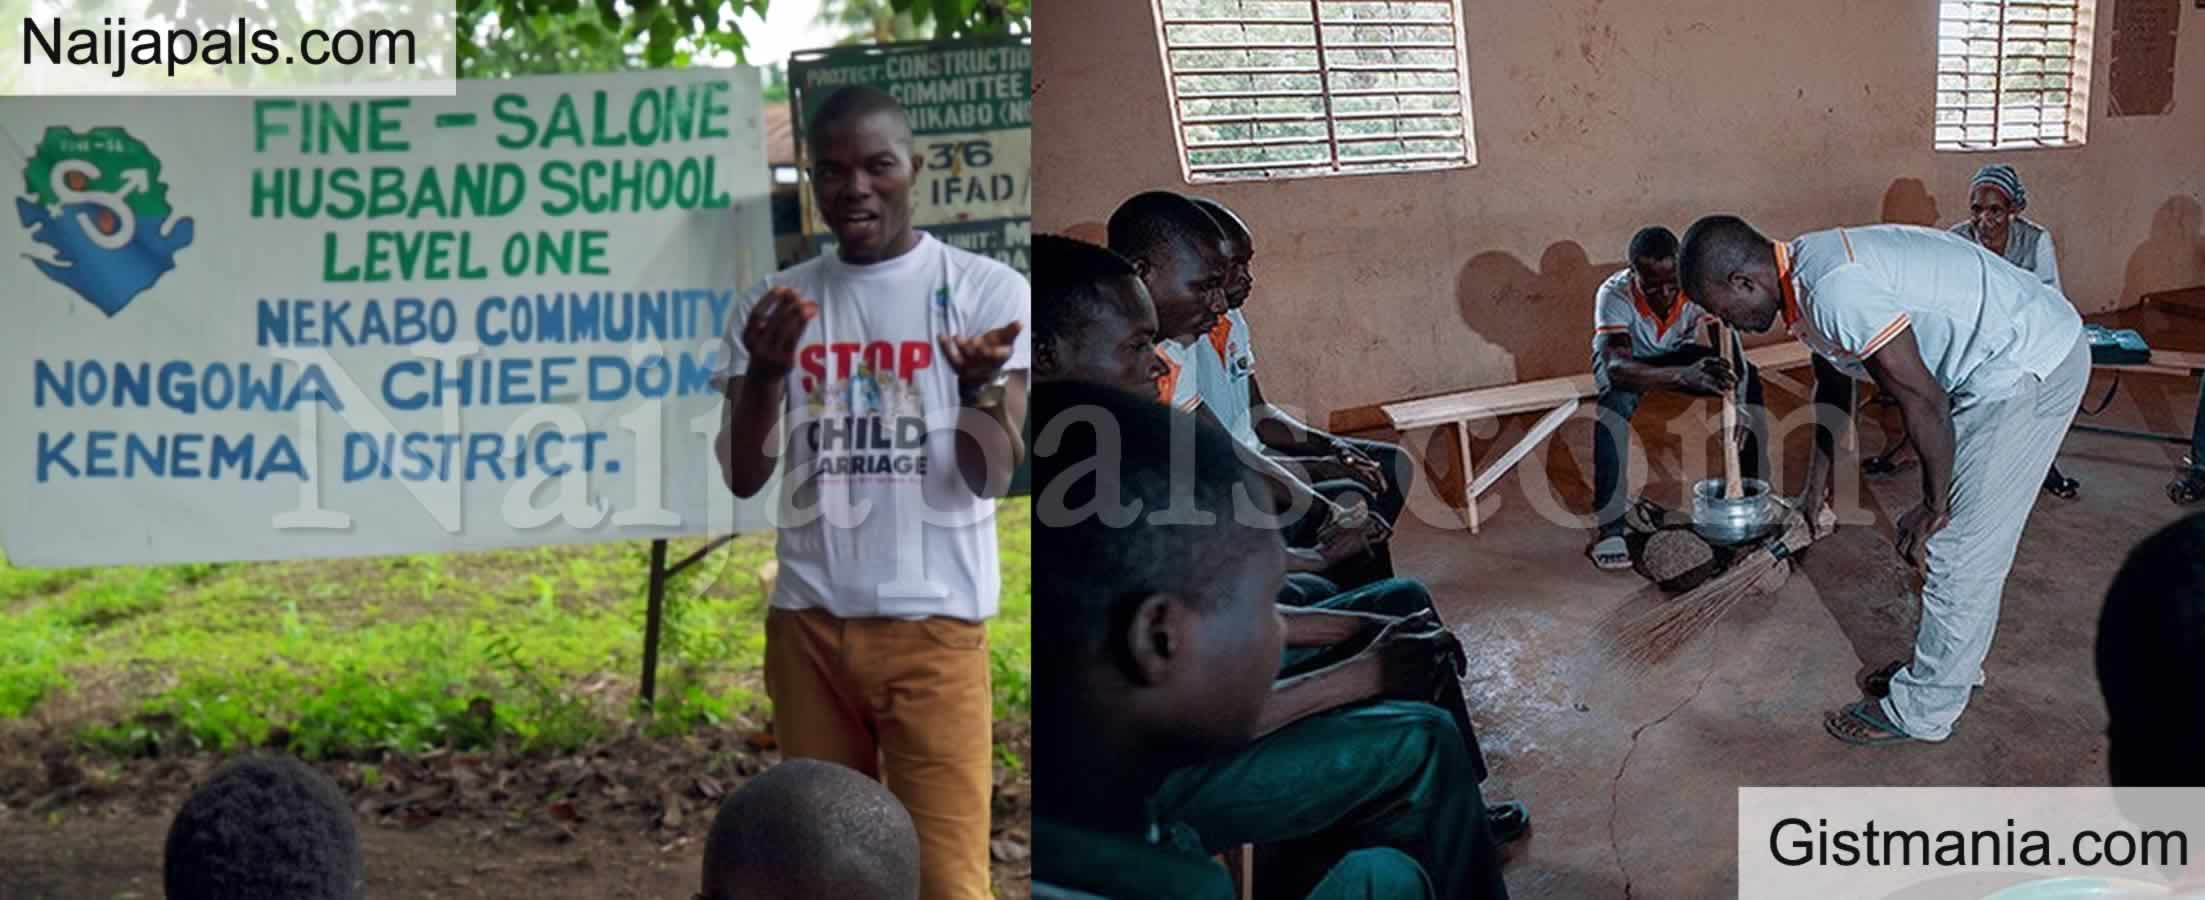 "<img alt='.' class='lazyload' data-src='https://img.gistmania.com/emot/rose.gif' /> <b>Men Attend ""Husband's School"" In Burkina Faso To Learn How To Become Better Husbands</b>"